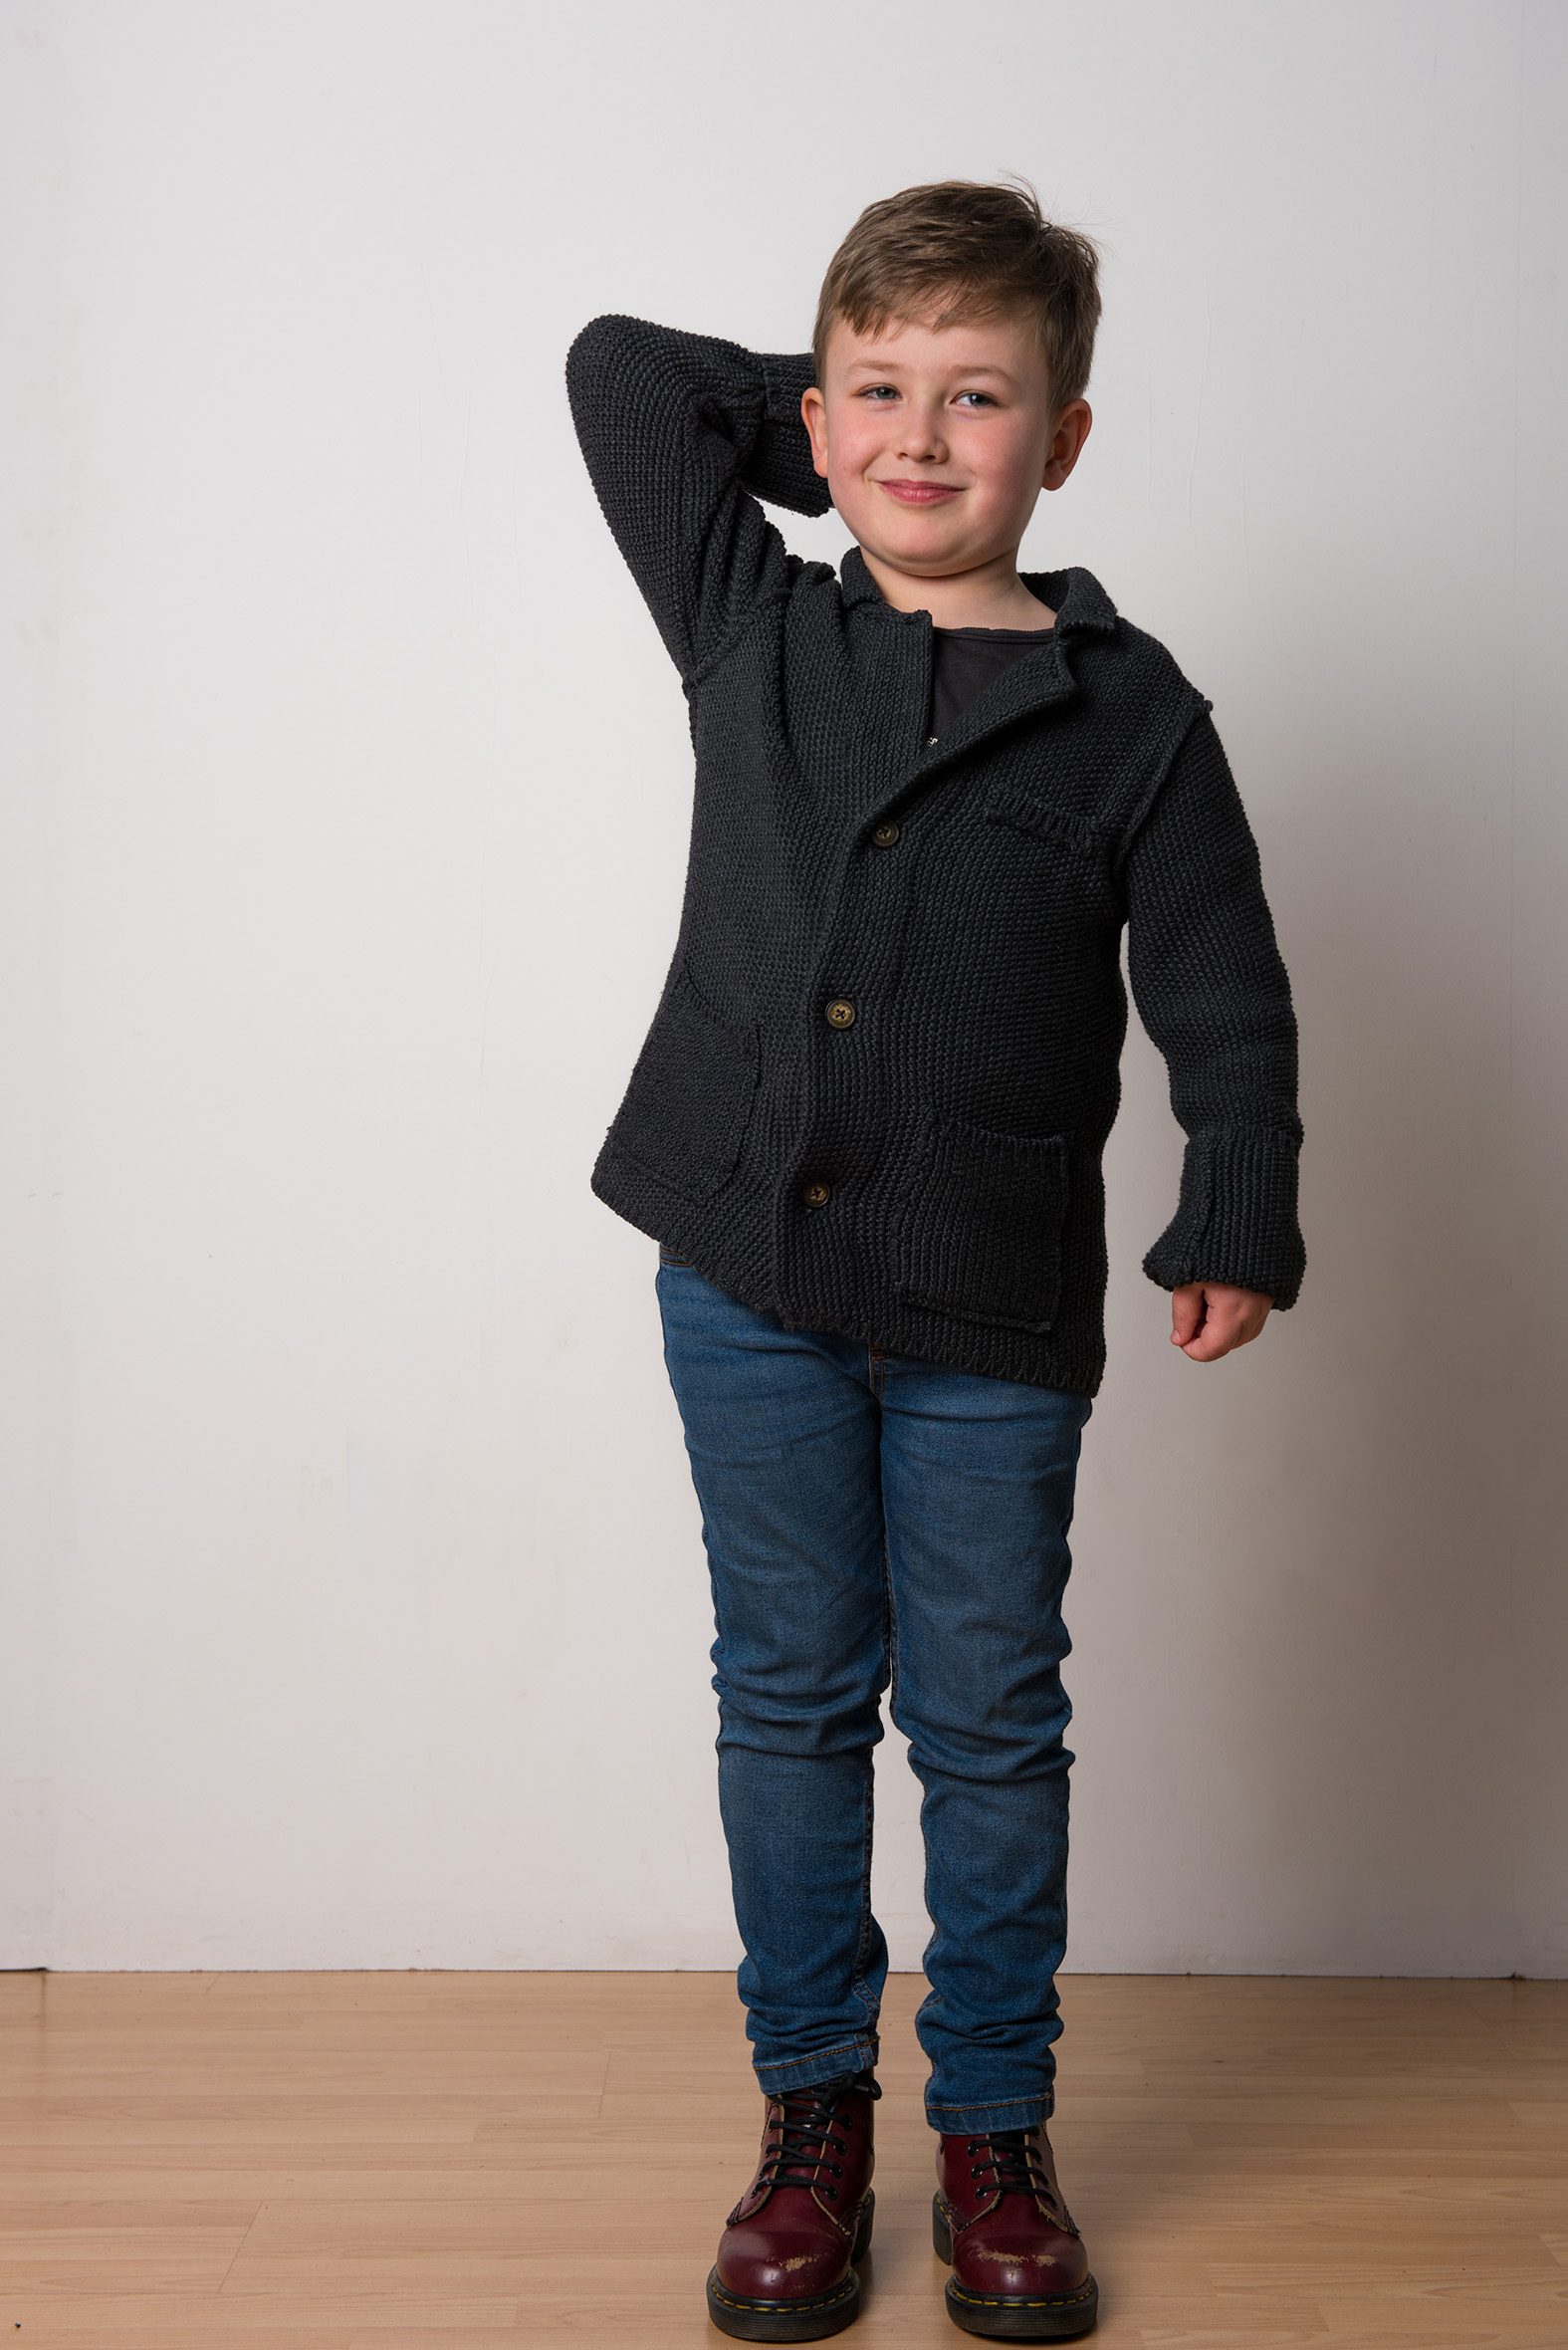 Stamford, Cerebral Palsy, Zebedee Management, disabled, model agency, disability, Boy (1)